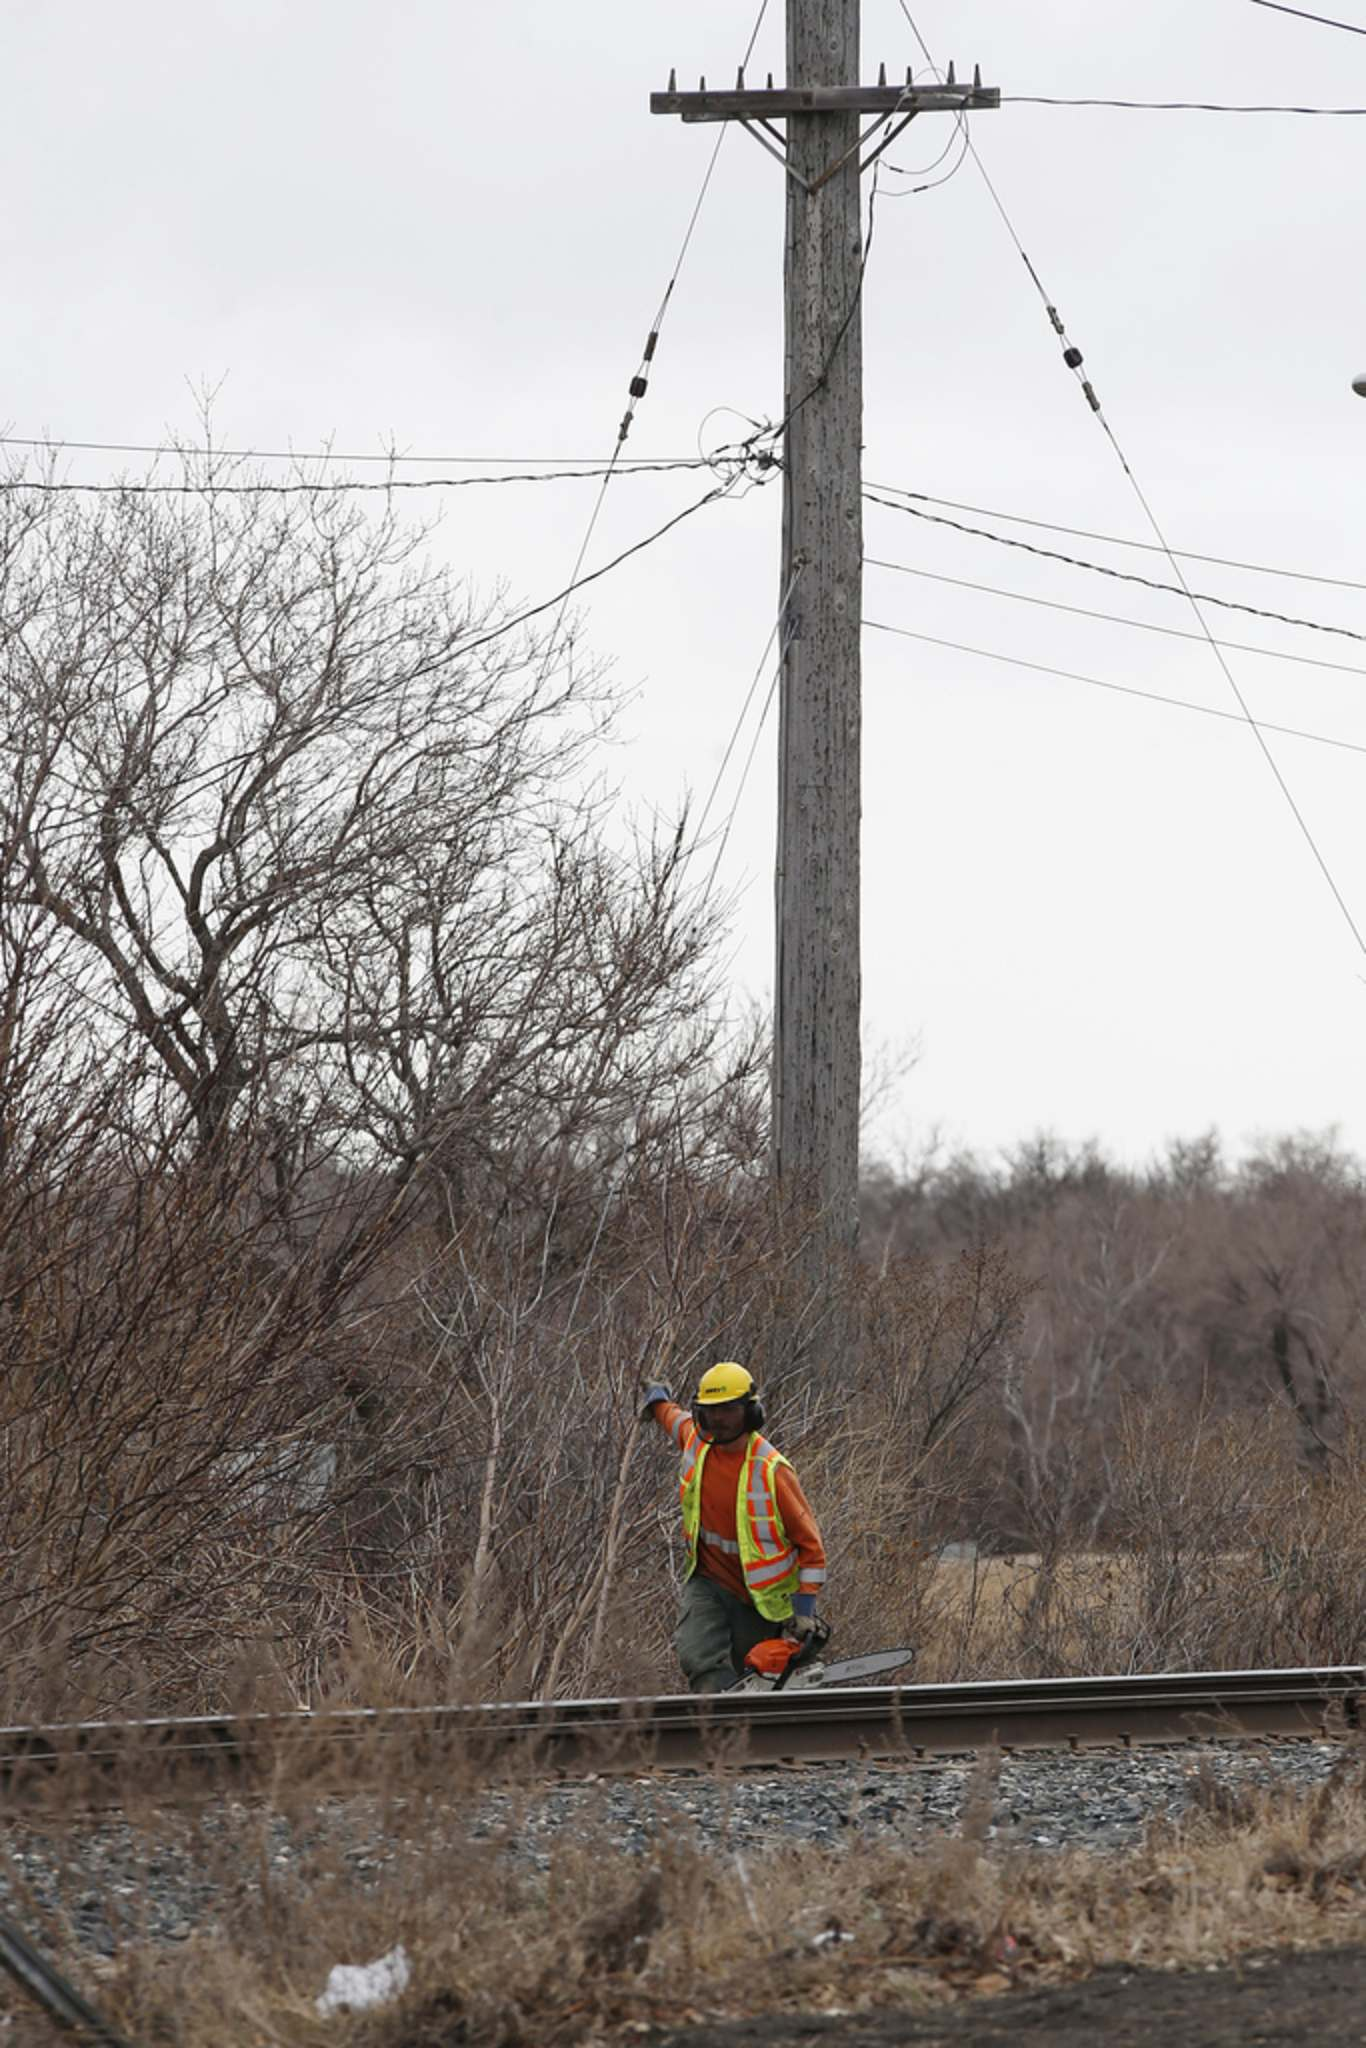 <p>Crews were out clearing trees along a hydro and rail line near Omand Park in Winnipeg Tuesday.</p>